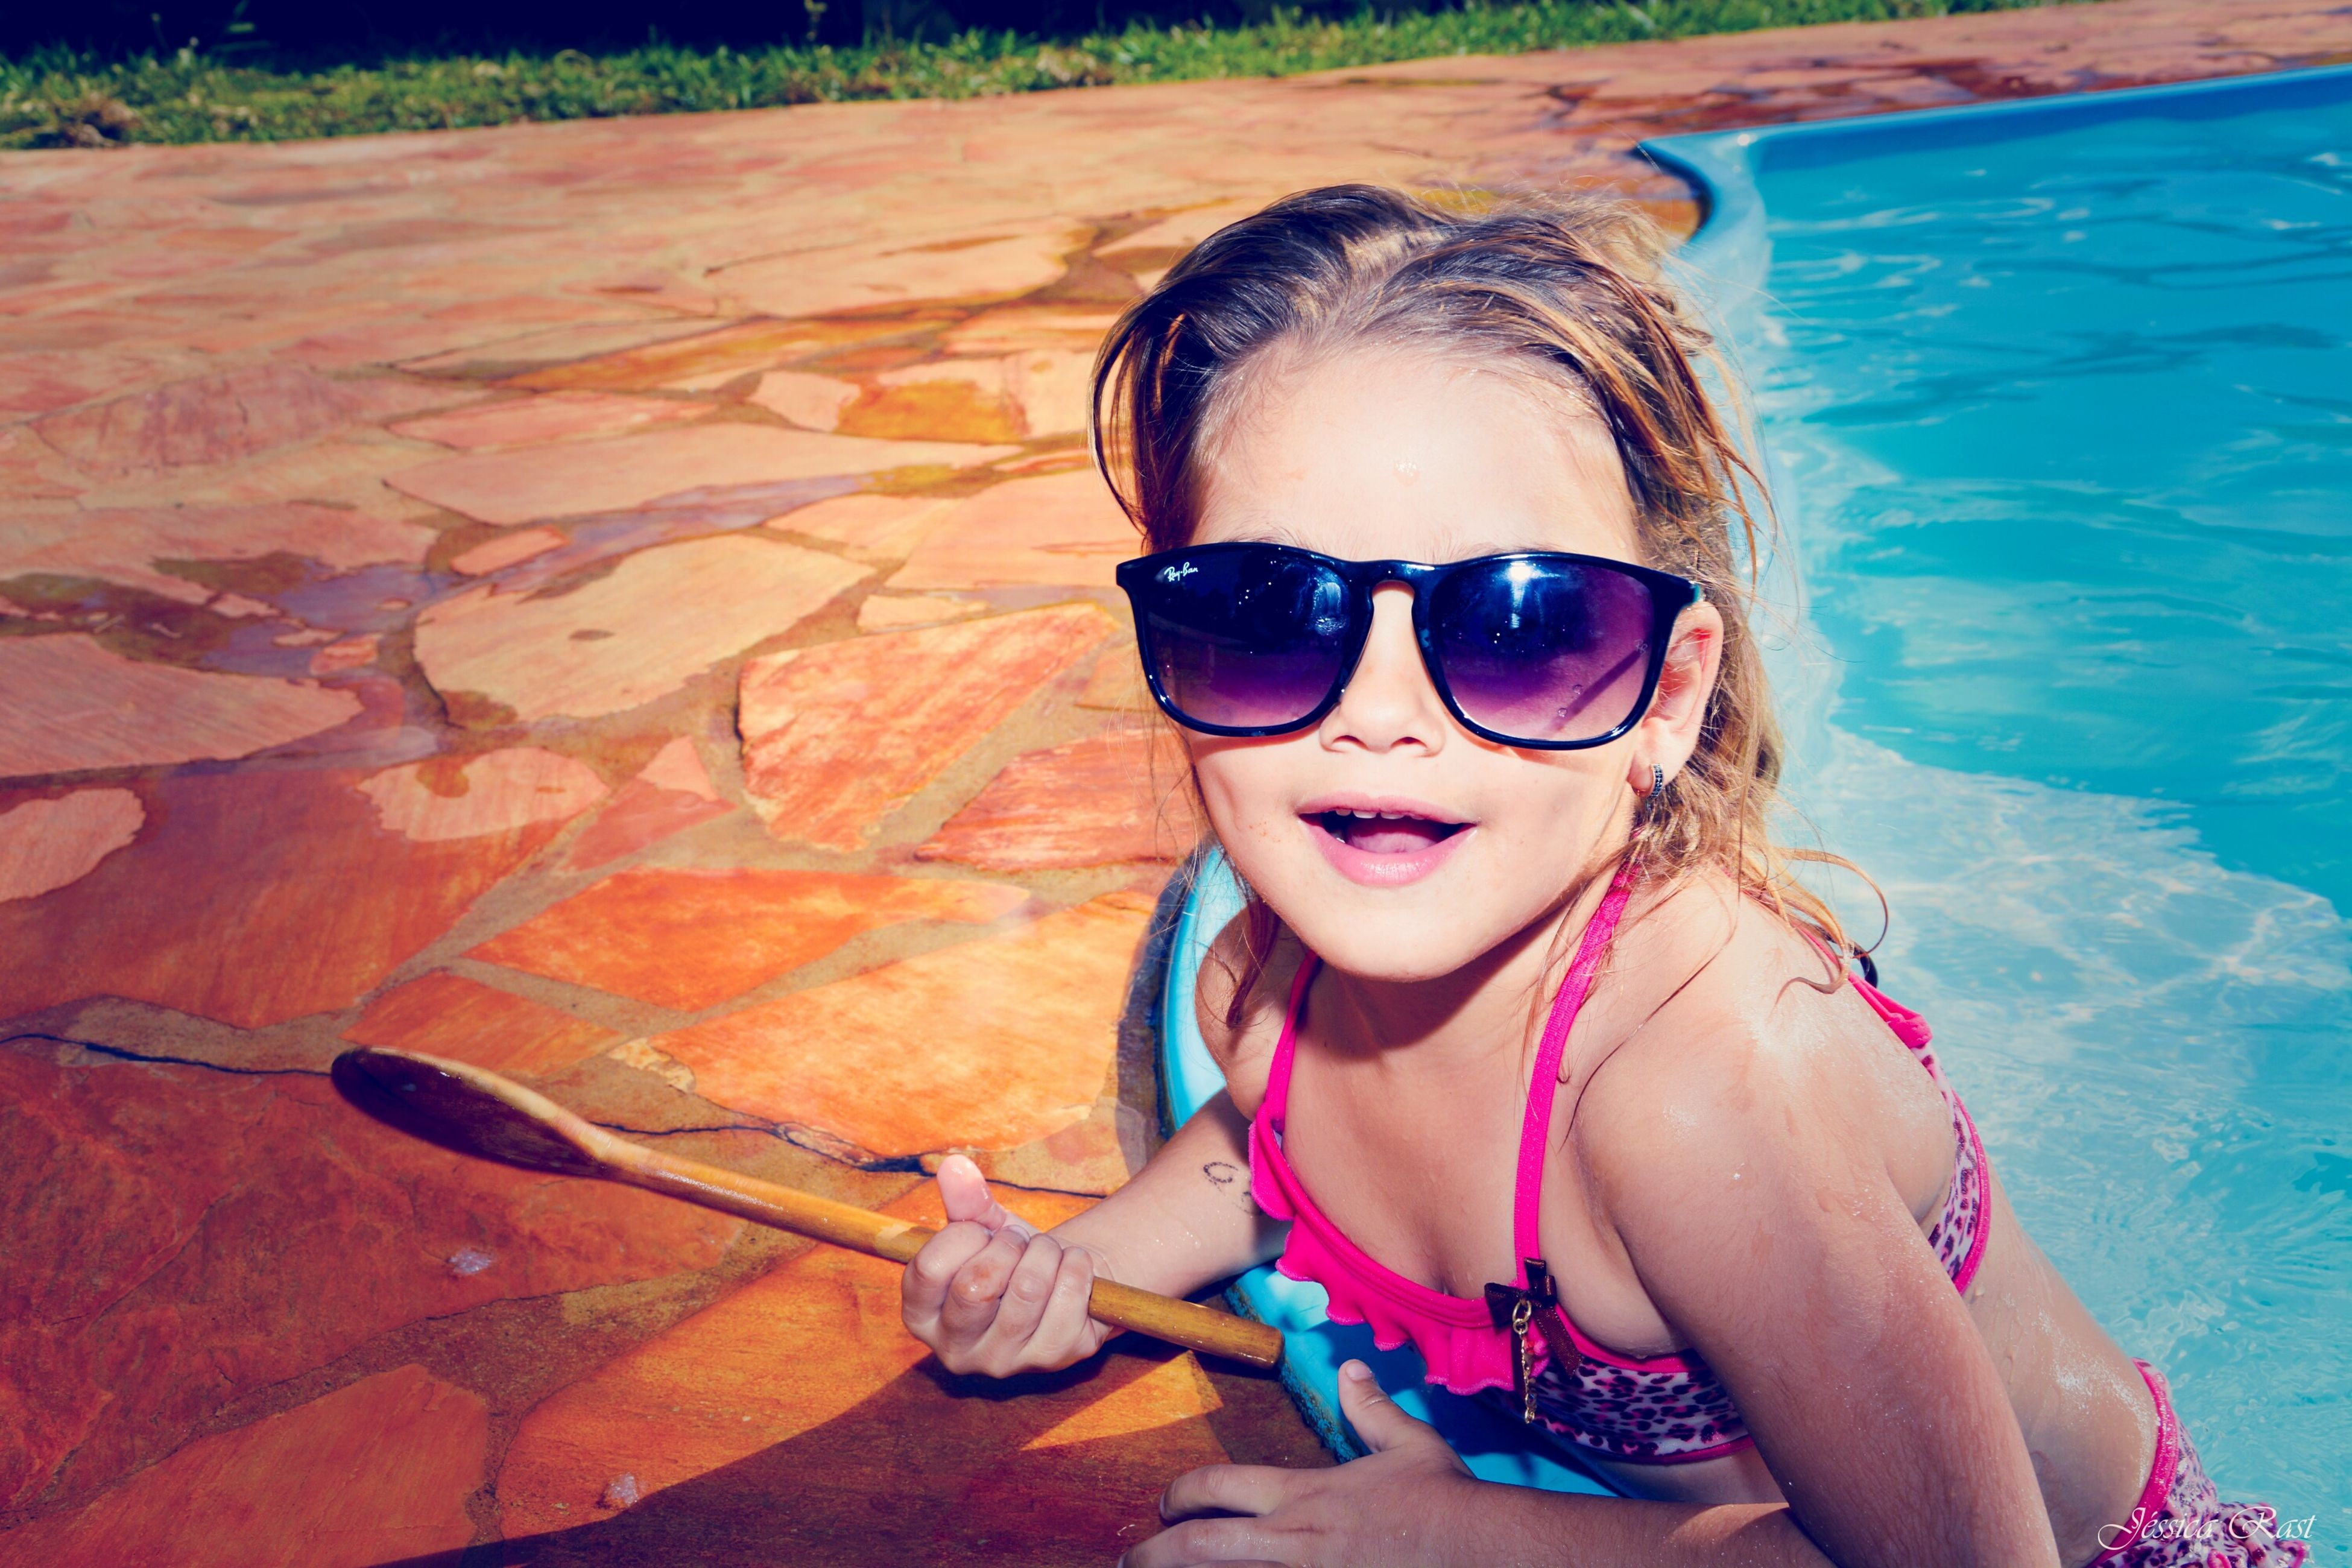 sunglasses, child, summer, one girl only, sunlight, children only, childhood, one person, vacations, smiling, beach, outdoors, sand, portrait, people, day